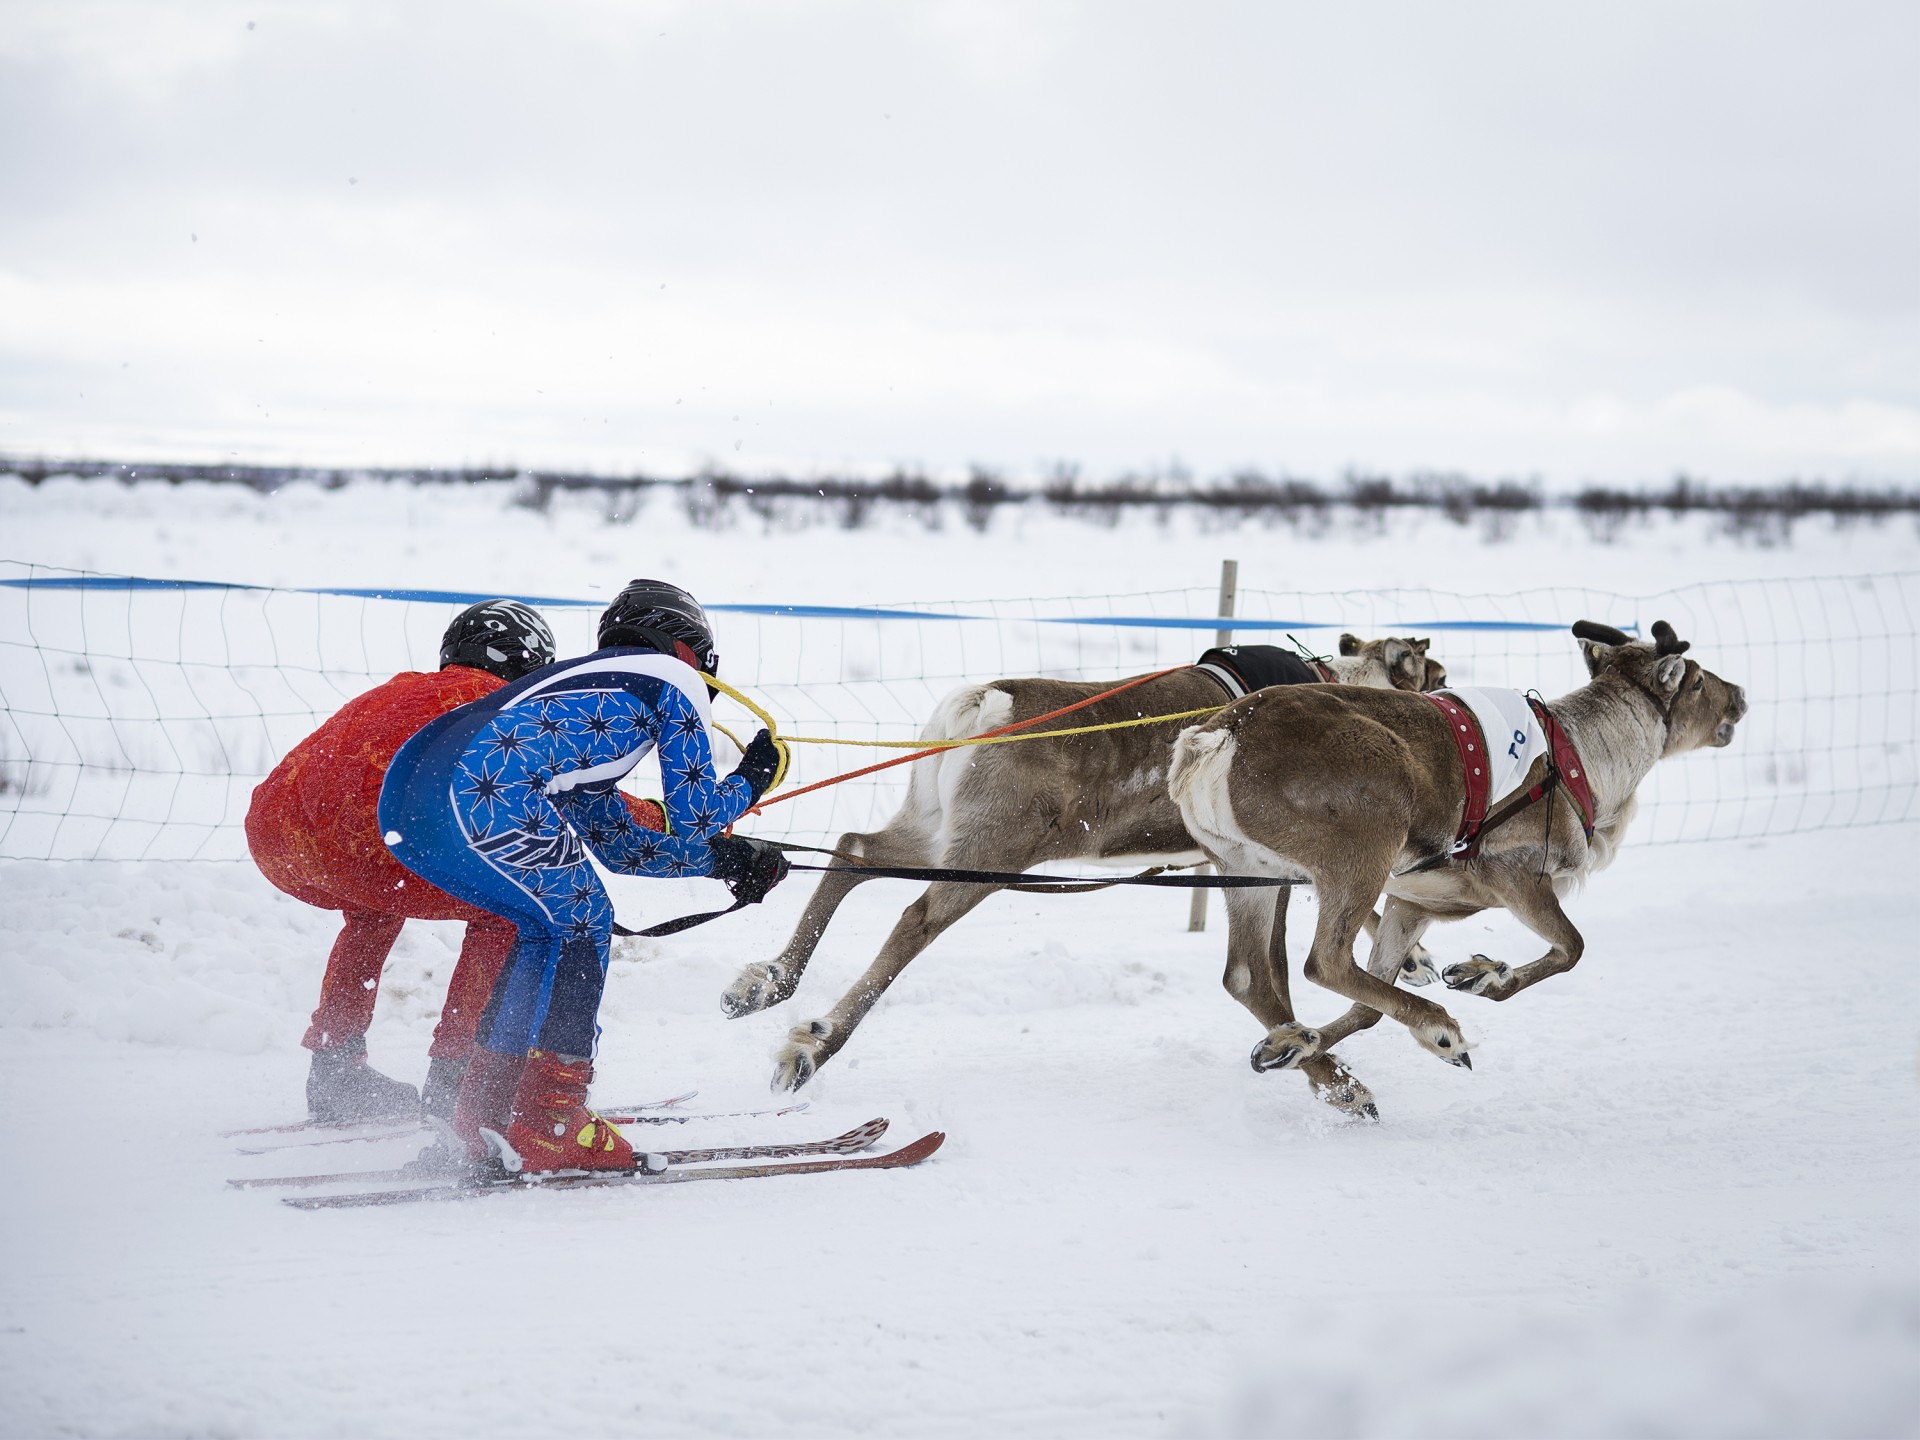 Two skiers racing against eachother with the help of reindeers.